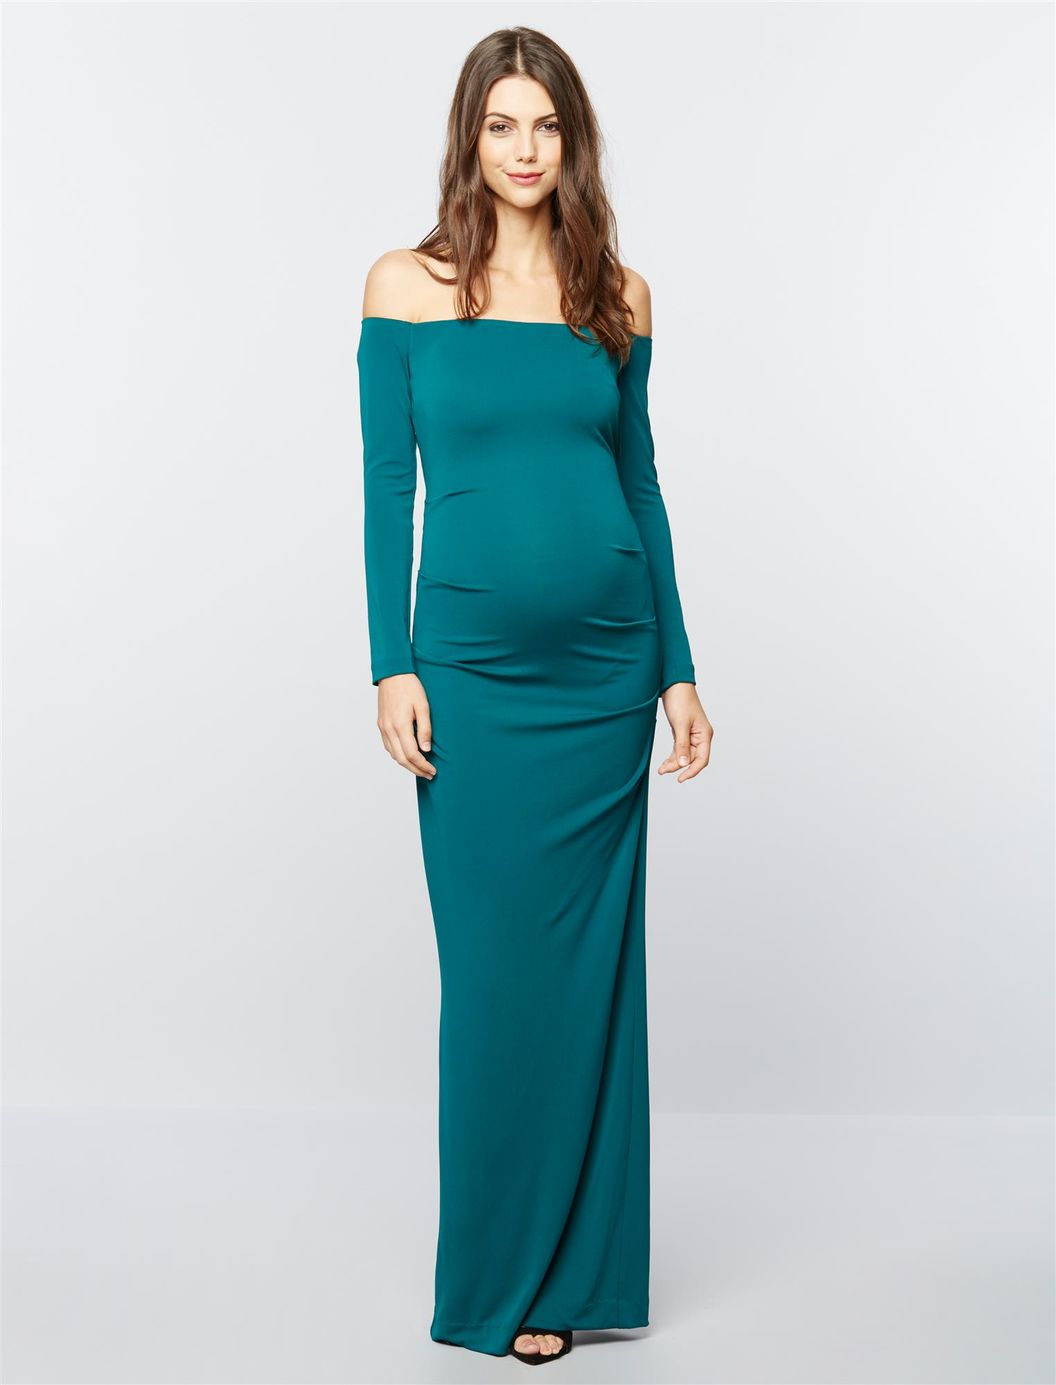 Cheap Maternity Dresses for Special Occasions – Plus Size Women ...